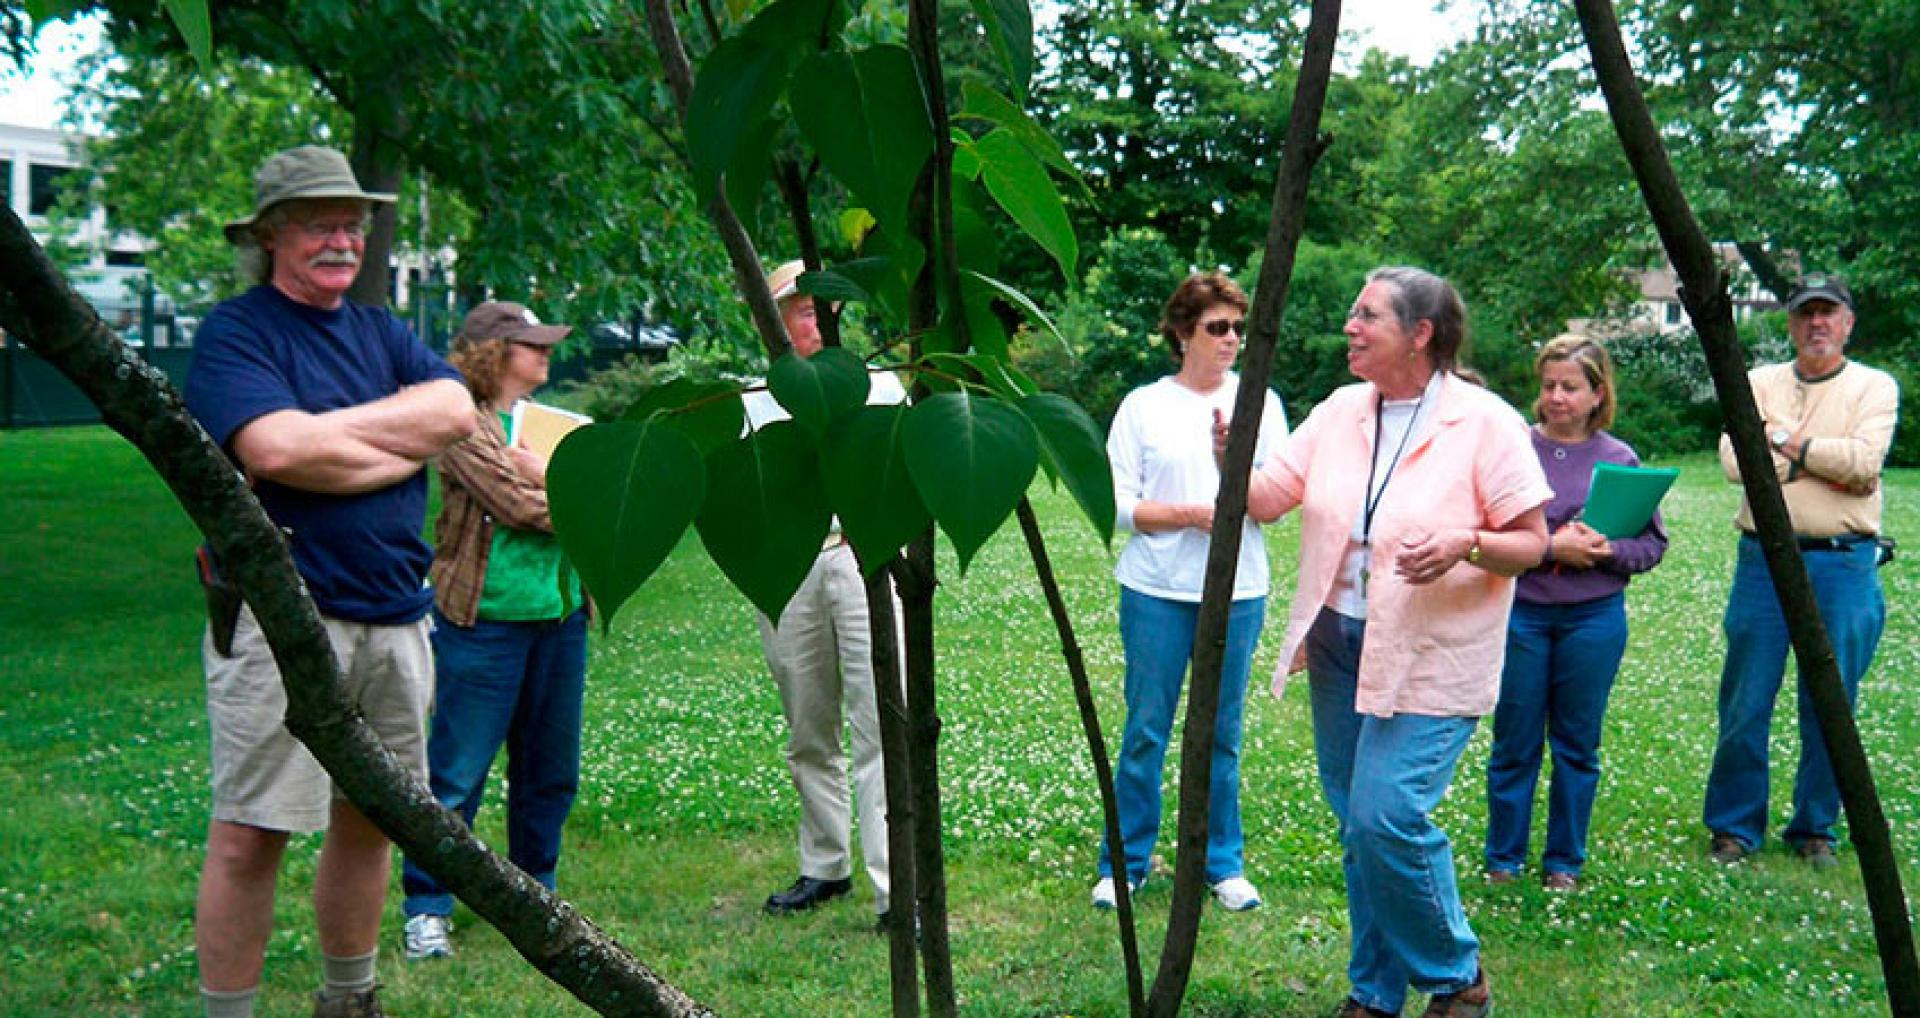 Docent leading a tour of the landscape